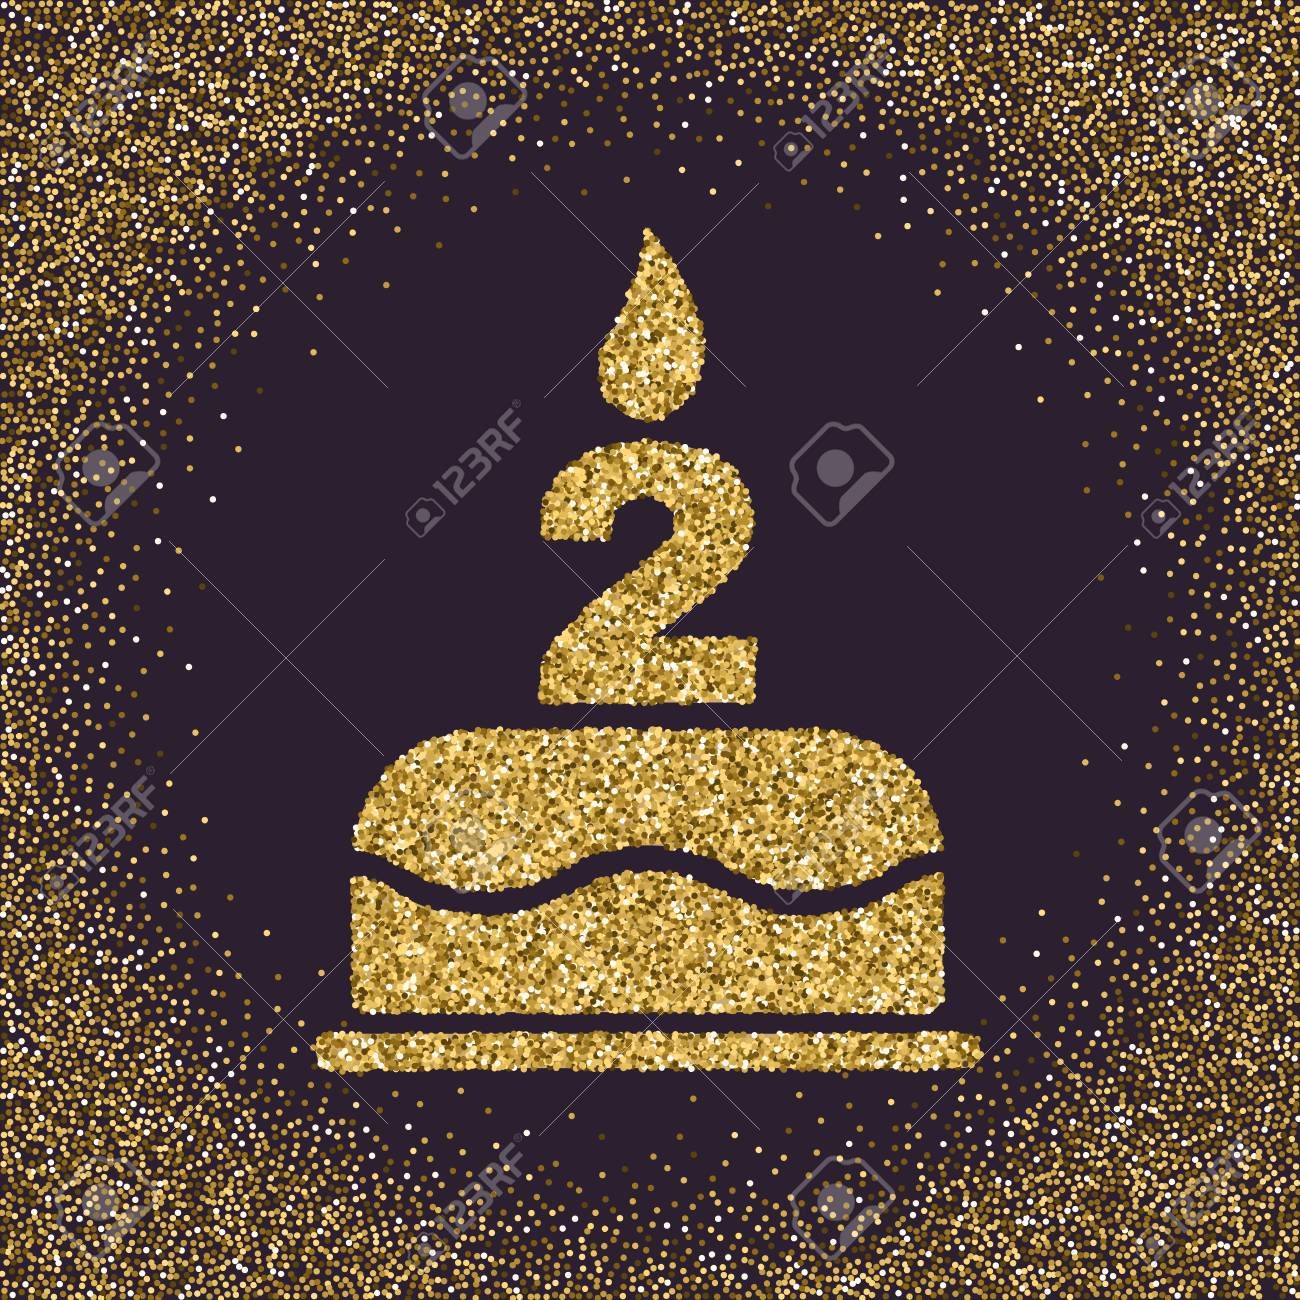 The Birthday Cake With Candles In Form Of Number 2 Symbol Gold